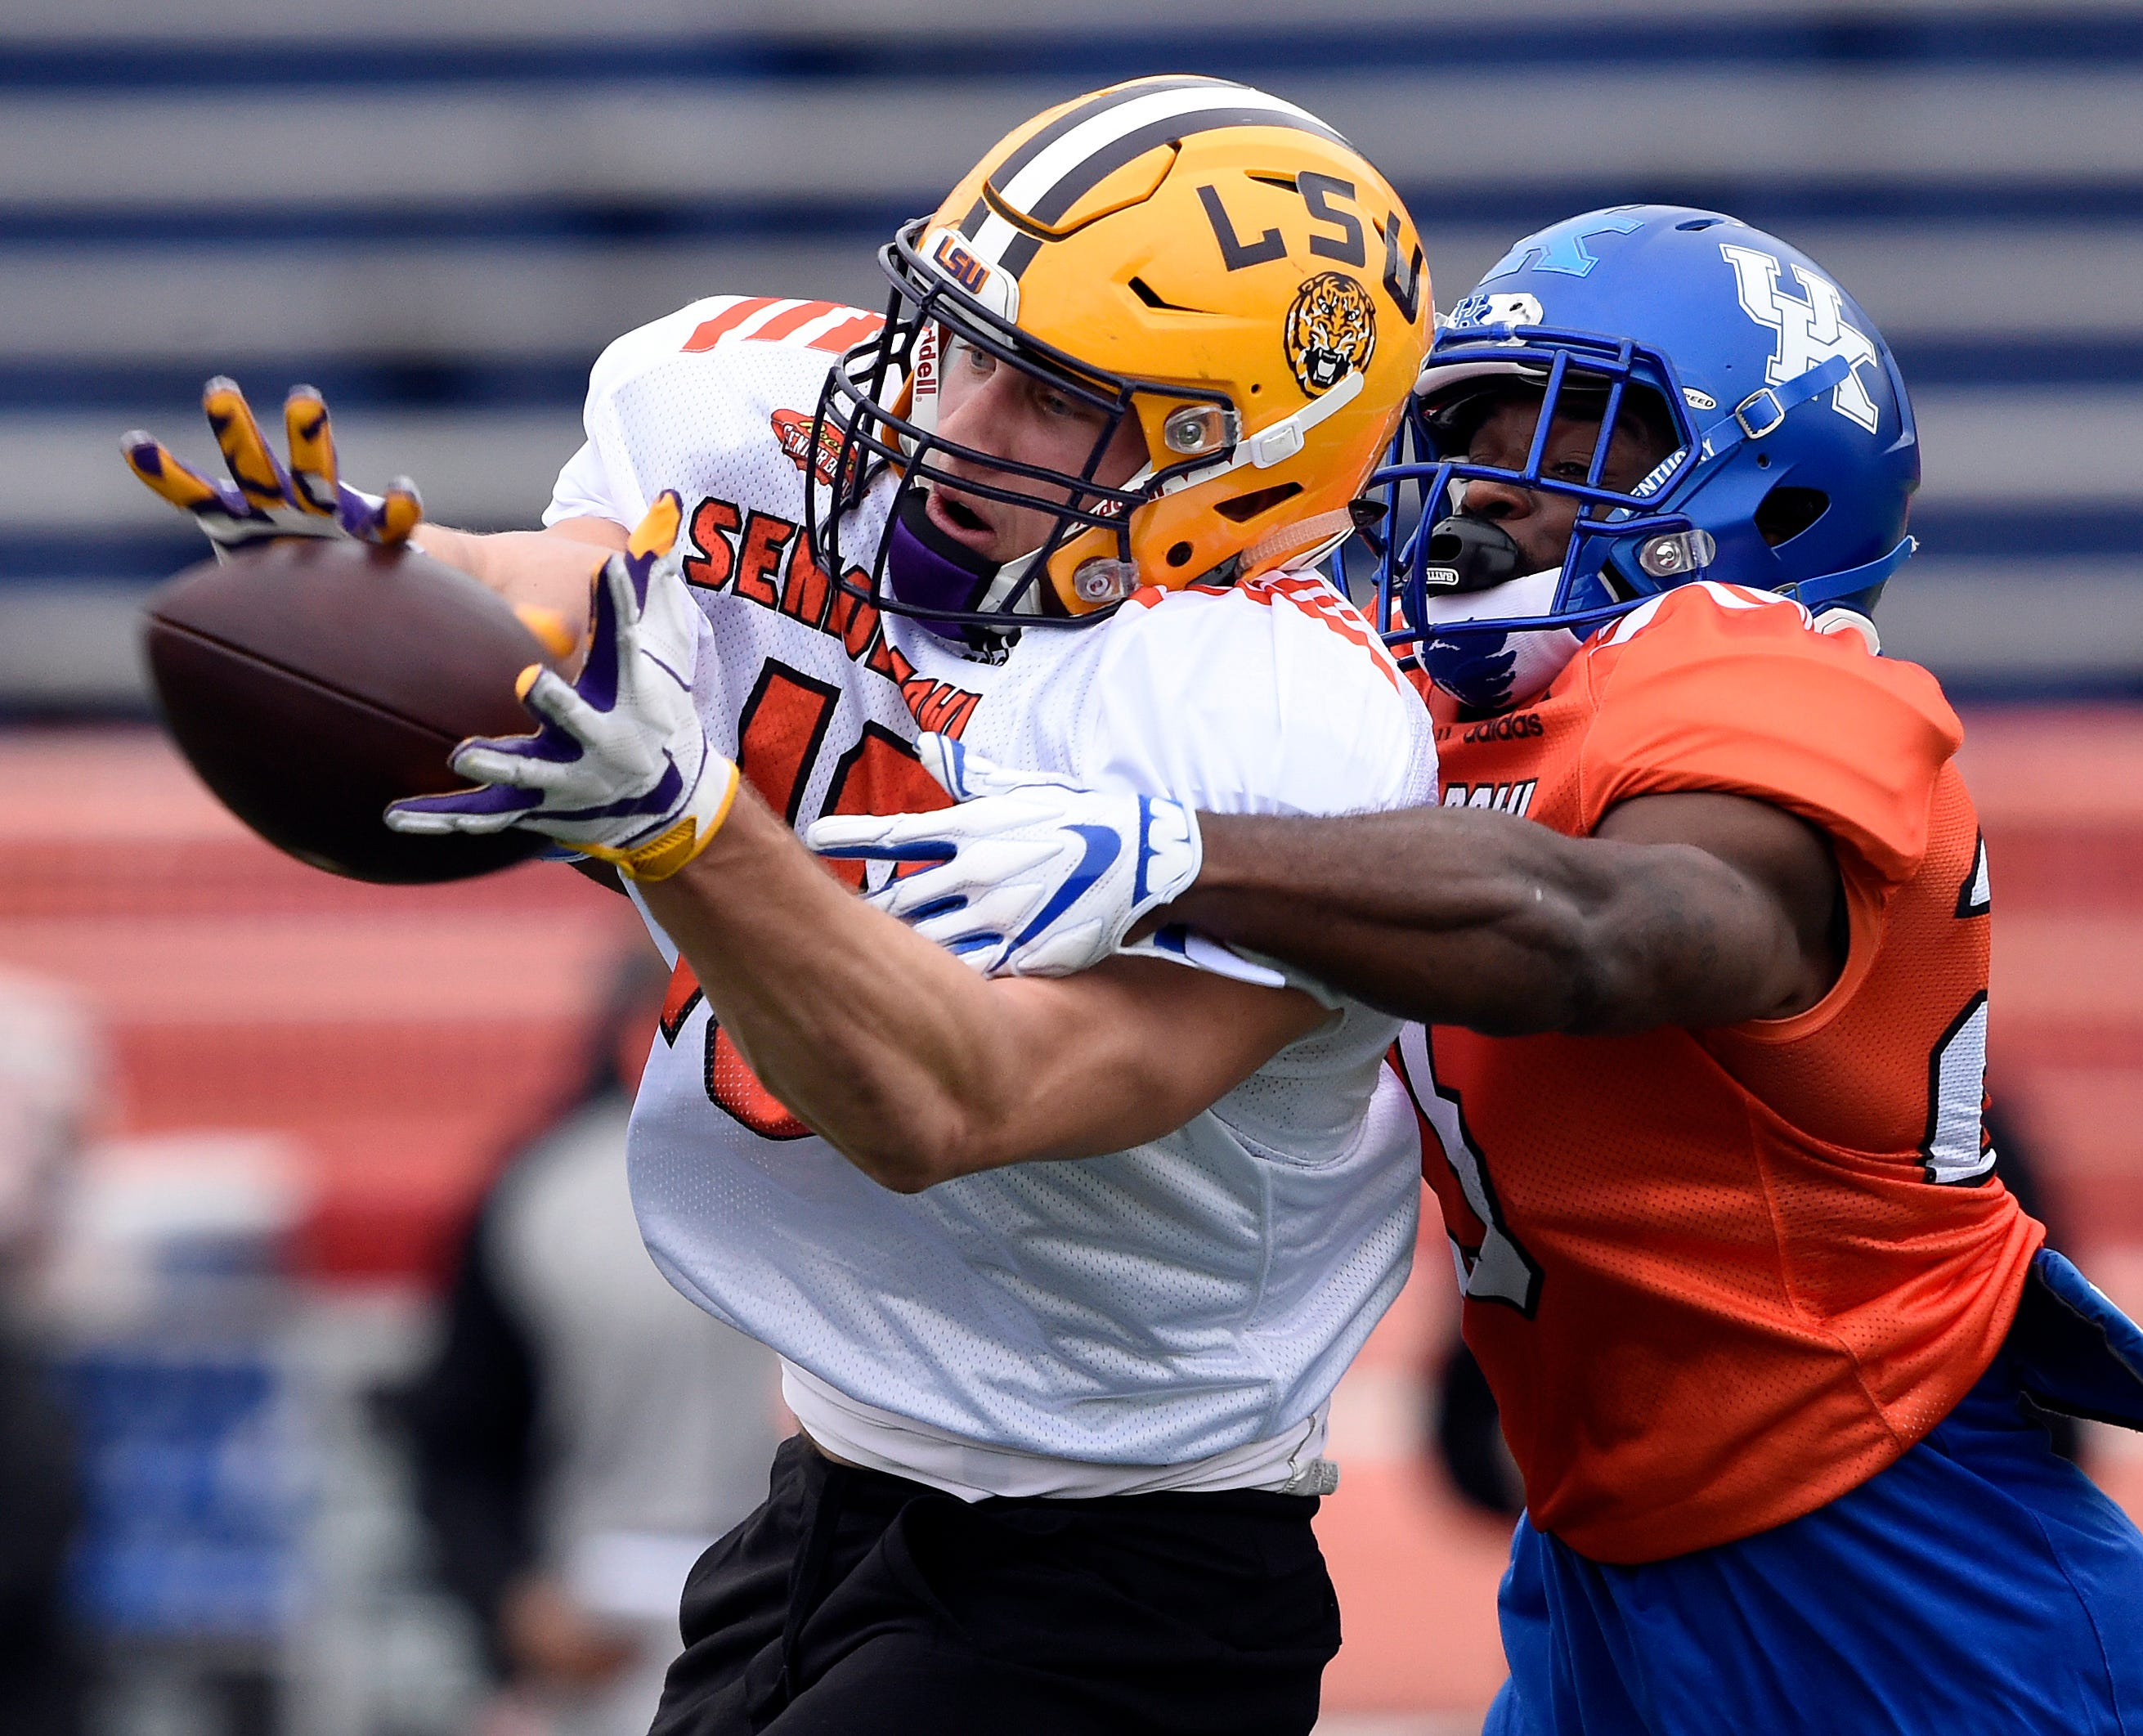 South tight end Foster Moreau of SU pulls in a pass over South safety Darius West of Kentucky during the South squad Senior Bowl practice at Ladd-Peebles Stadium.